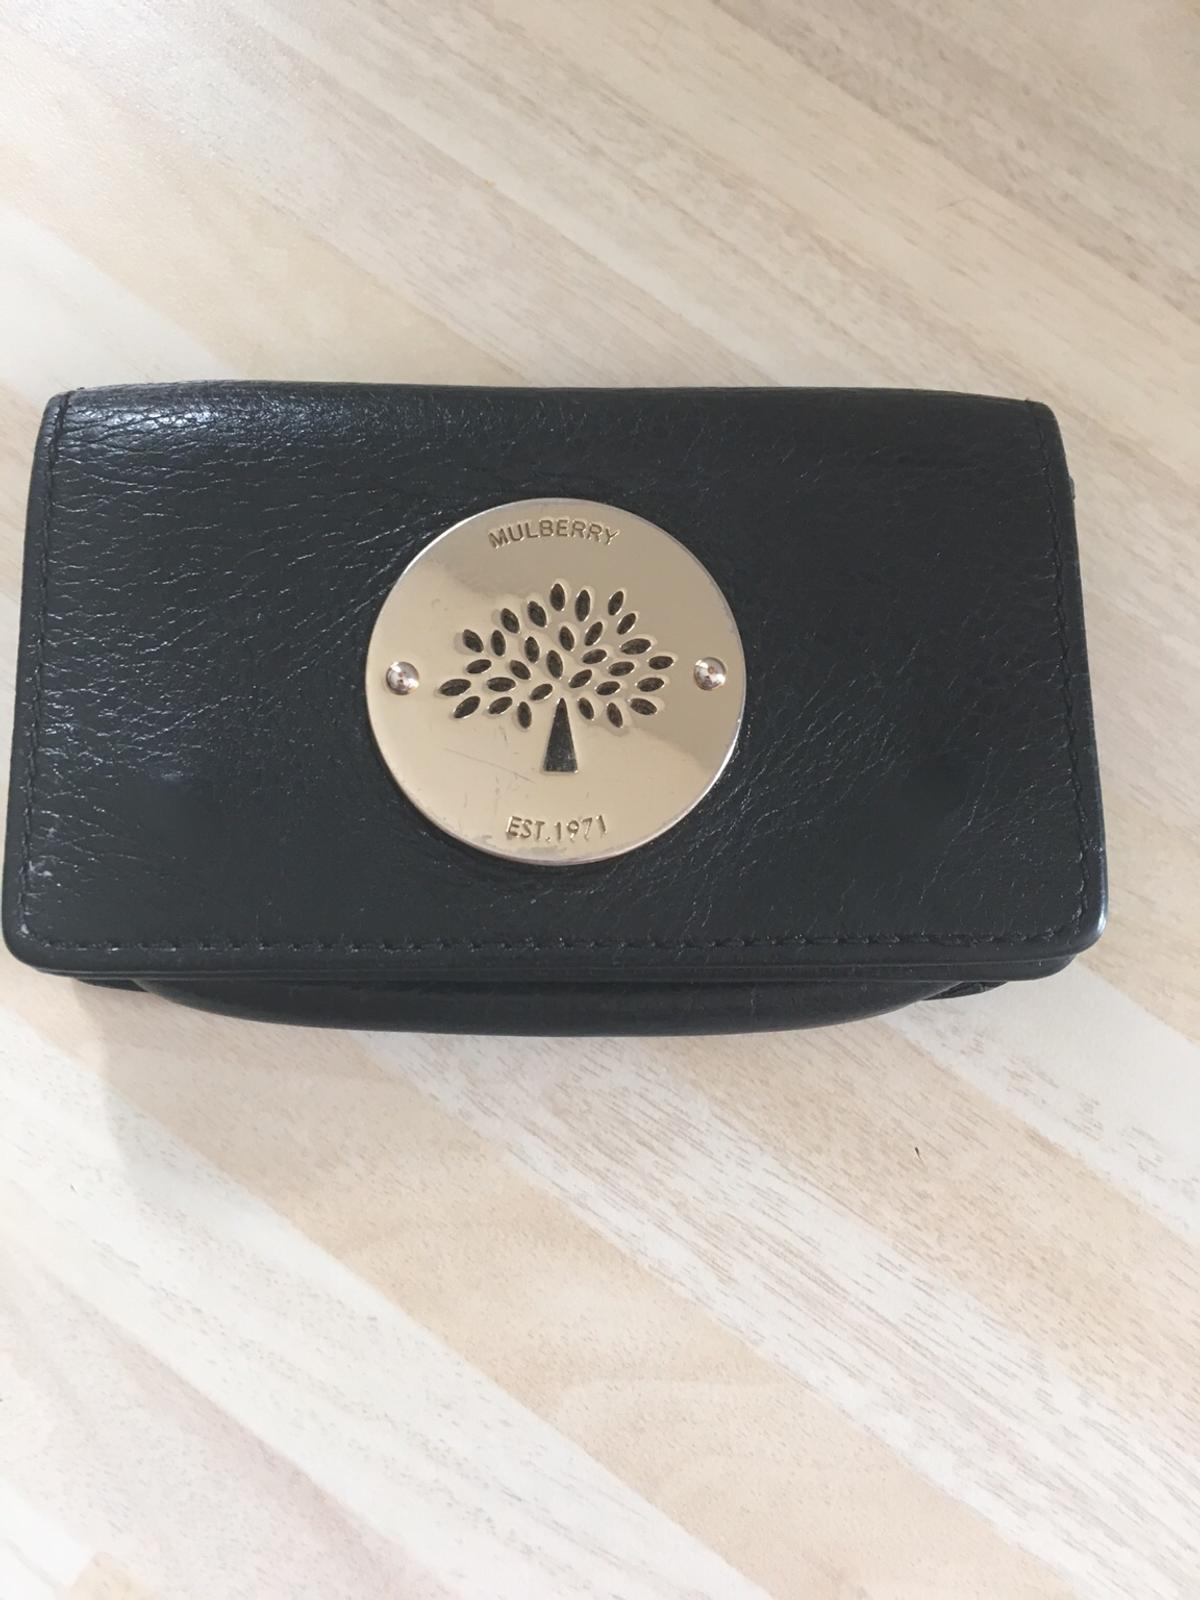 superior quality modern and elegant in fashion variety of designs and colors Genuine Leather Mulberry Coin Purse